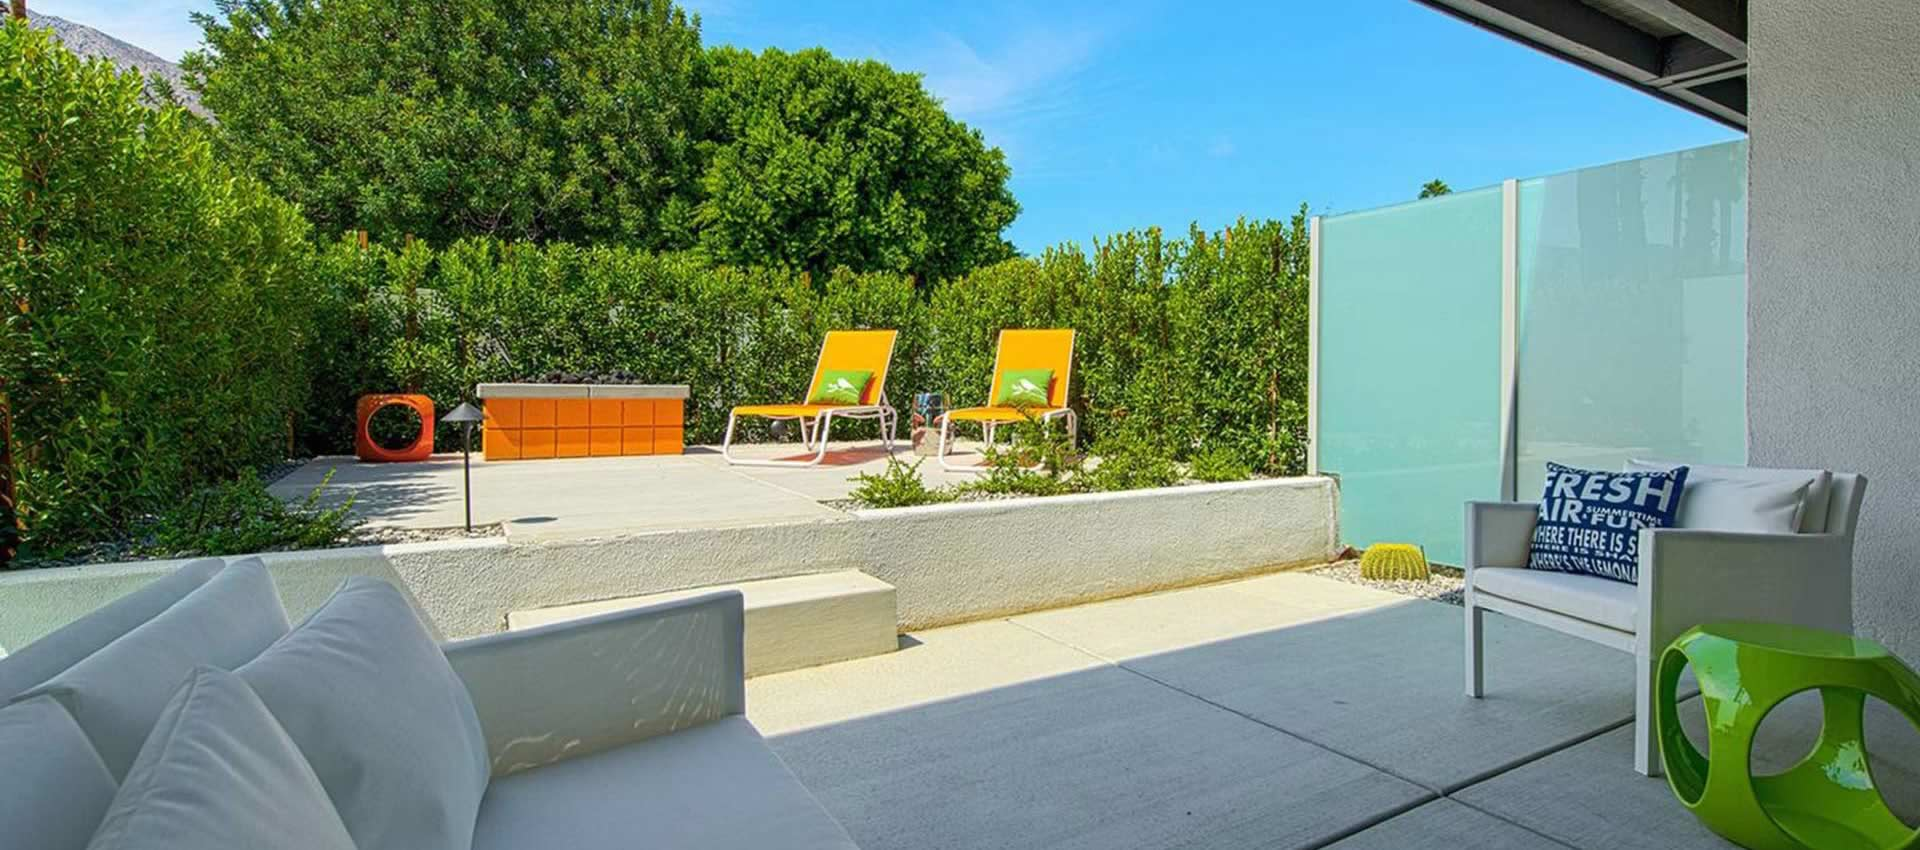 Twist Hotel Unit 107 patio sitting area with firepit